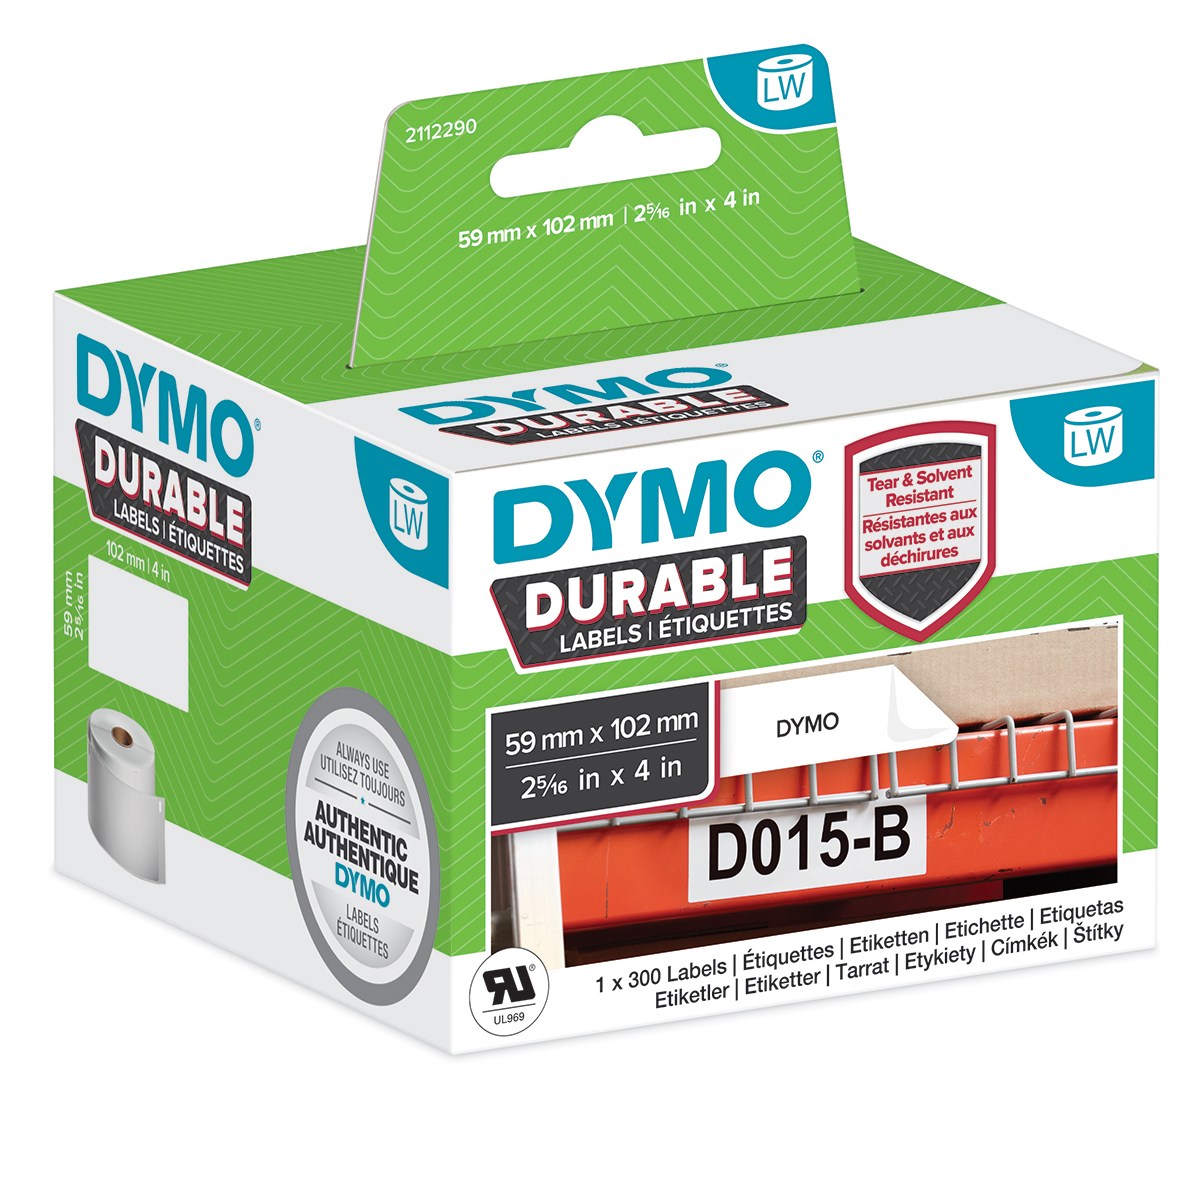 Dymo 2112290 LW Durable shipping label 59mm x 102mm Black on White